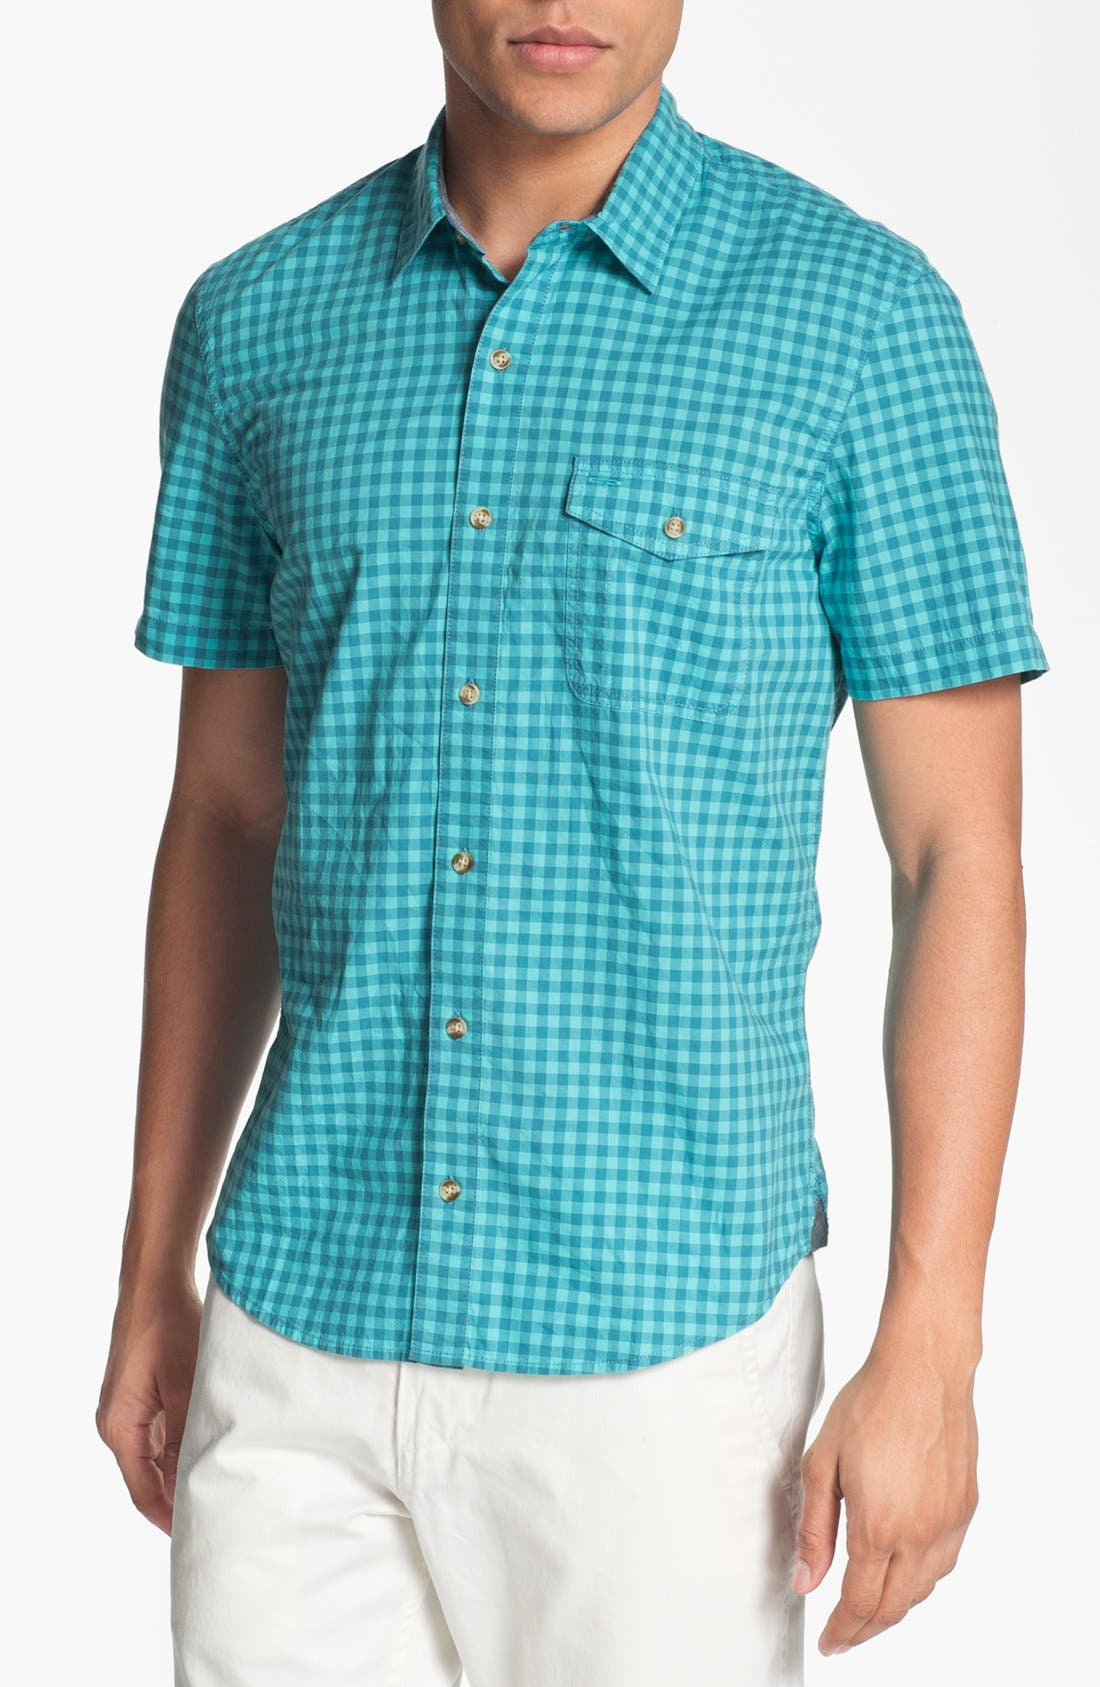 Alternate Image 1 Selected - 1901 Plaid Short Sleeve Woven Shirt